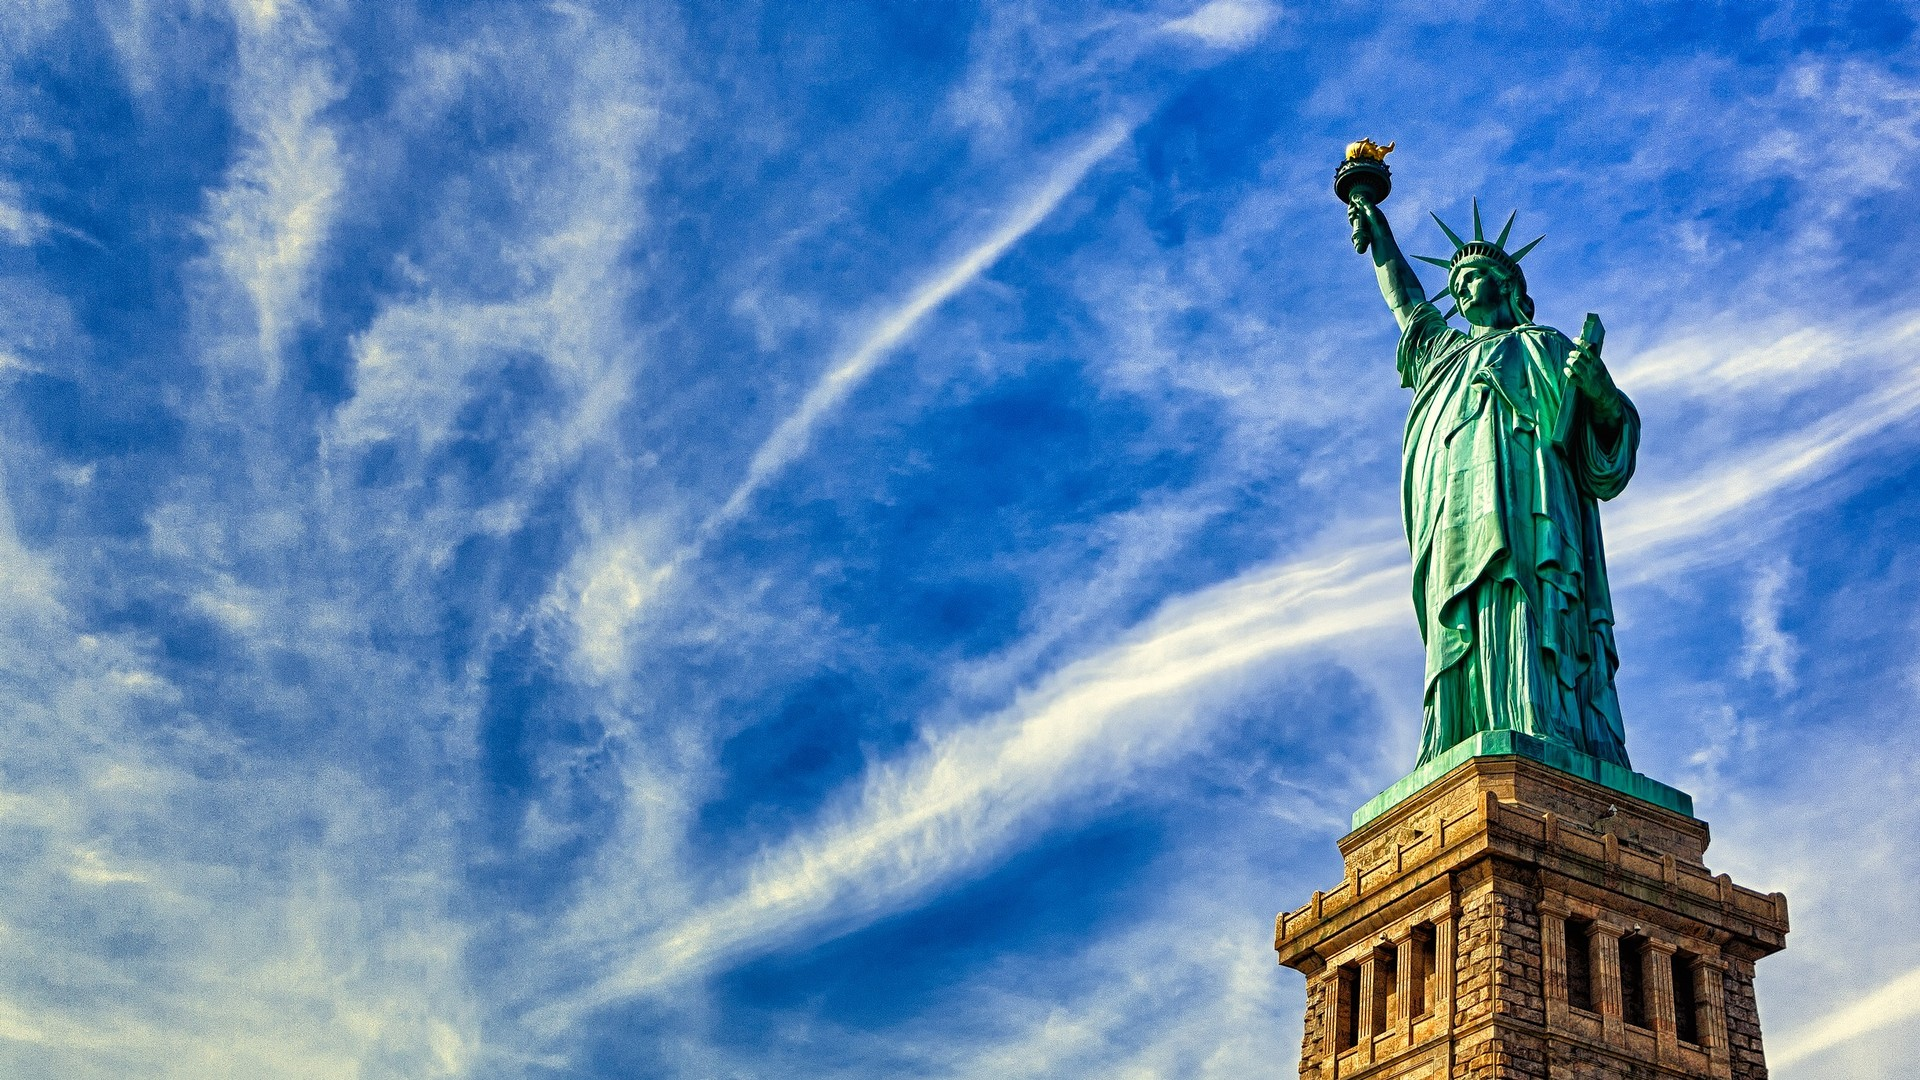 3d Wallpaper For Home Wall India Statue Of Liberty Wallpapers High Quality Download Free